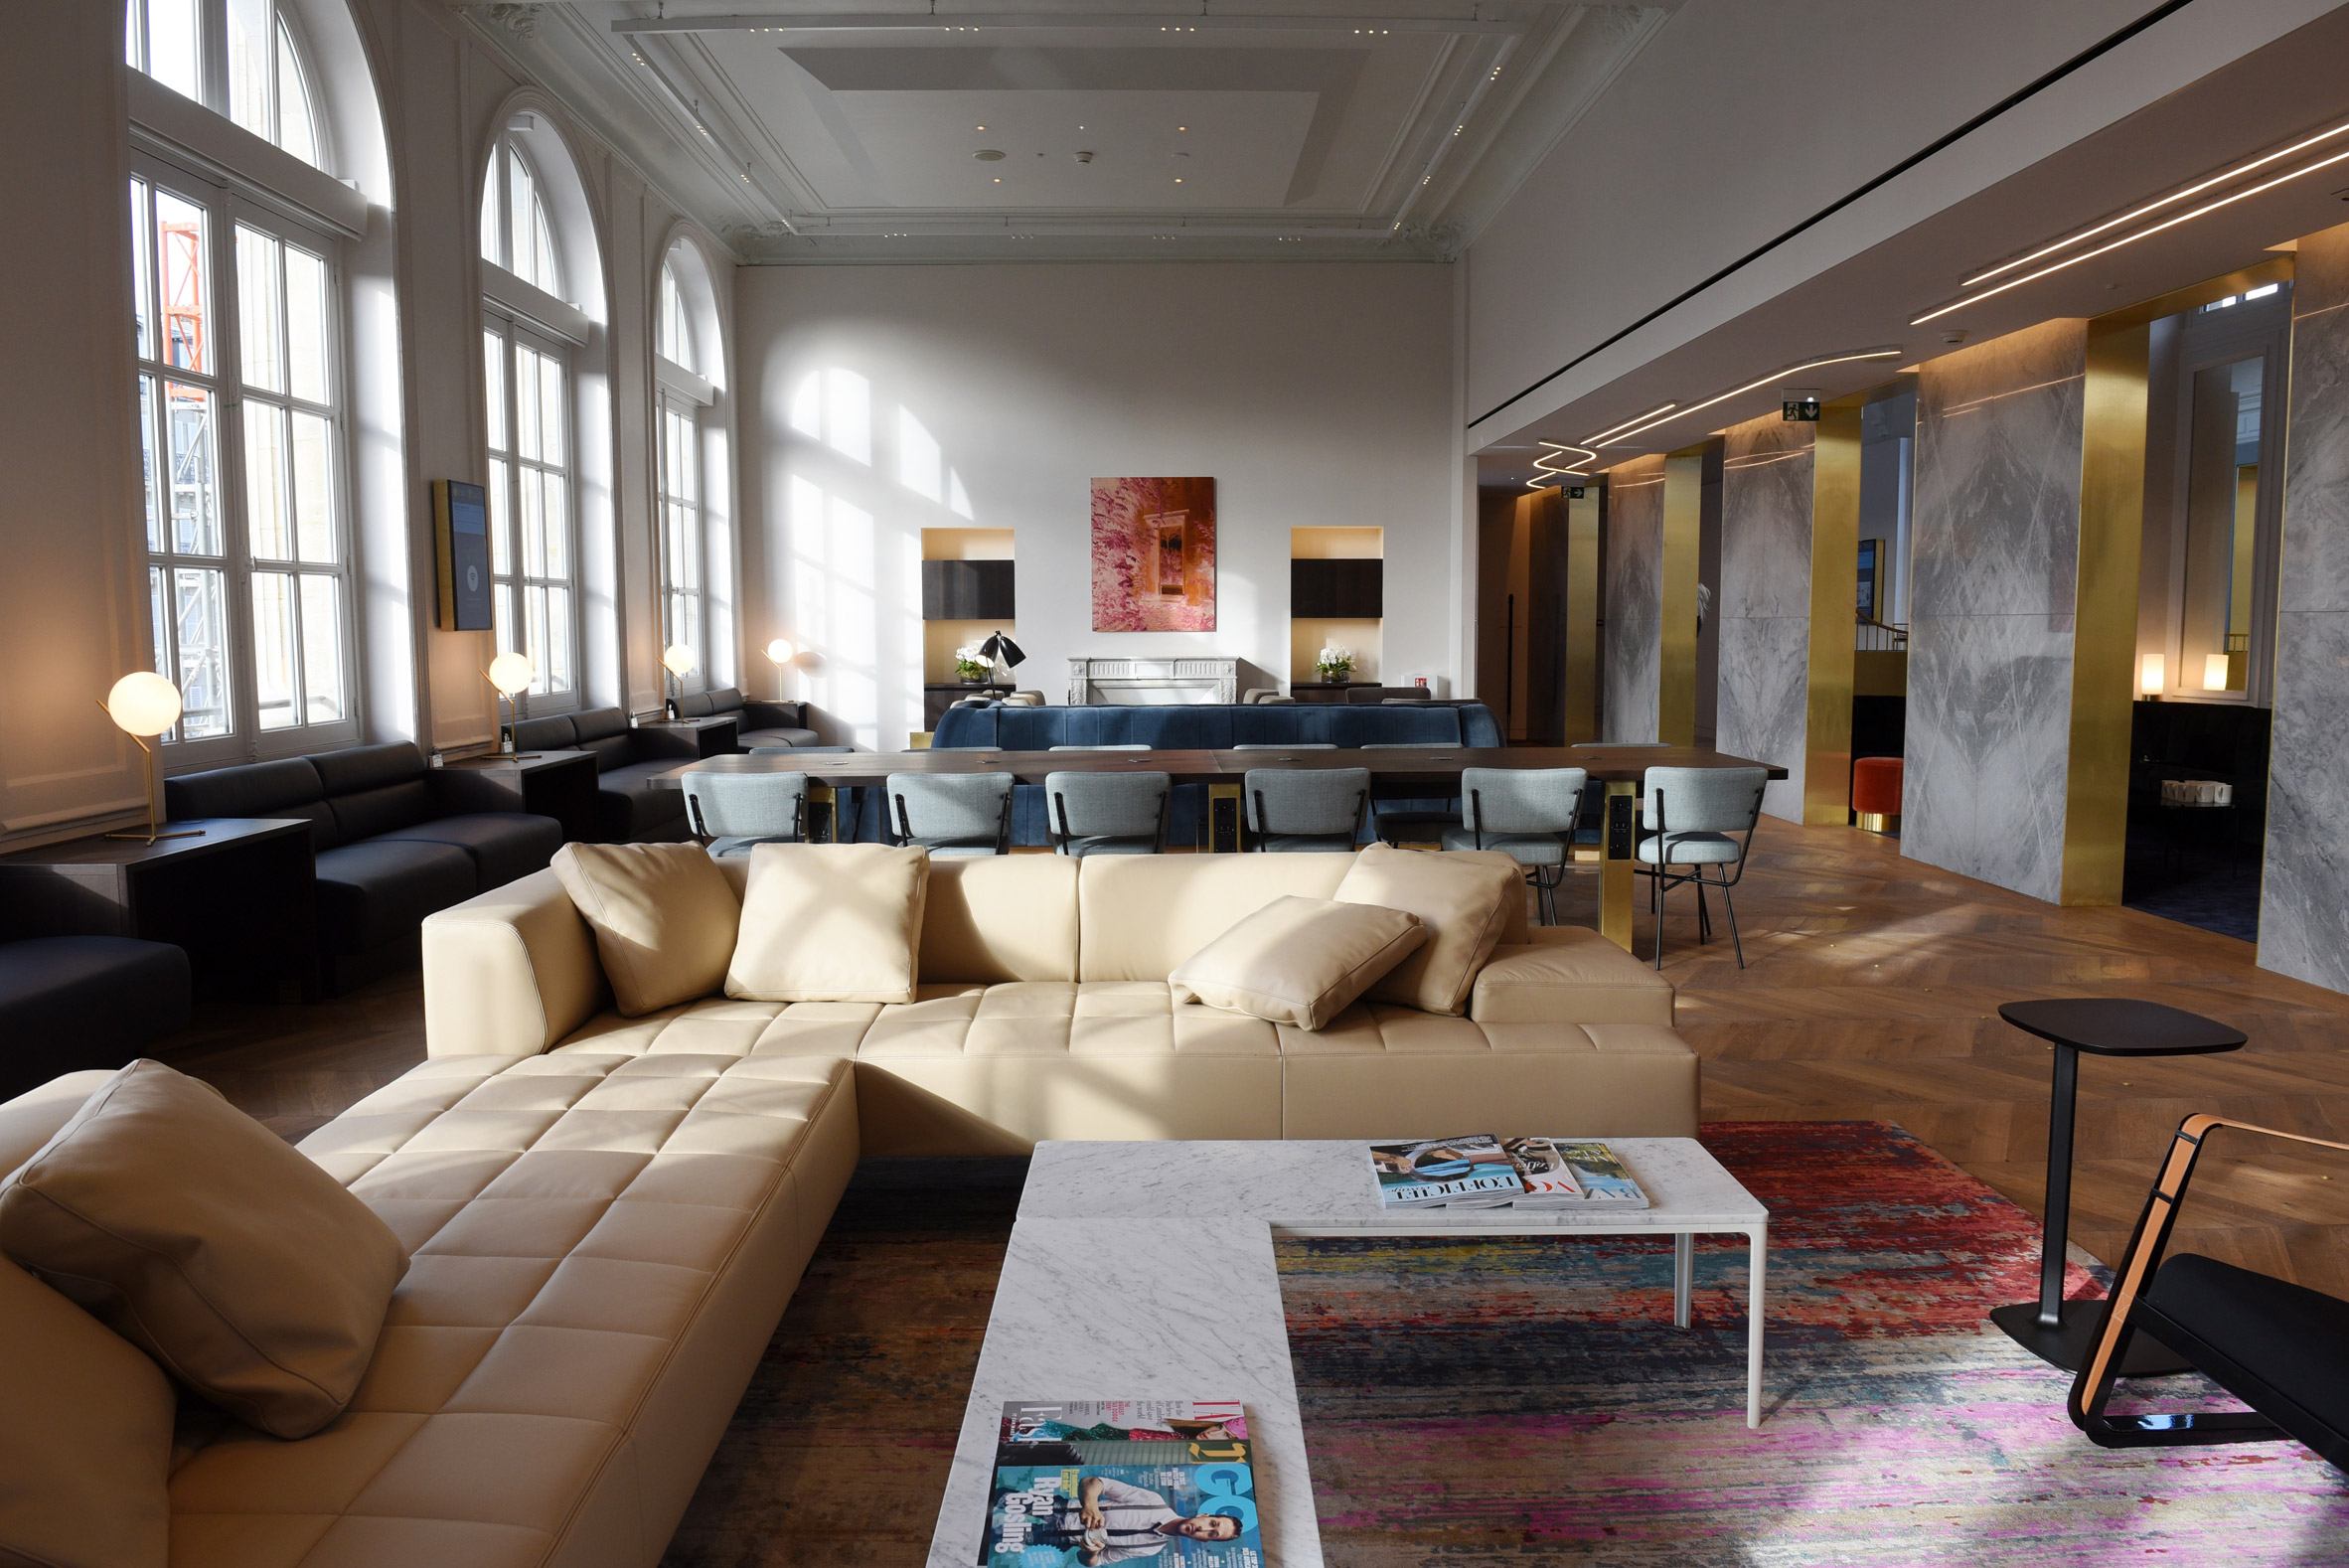 Softroom uses luxury materials to create decadent apartment-like Eurostar lounge in Paris